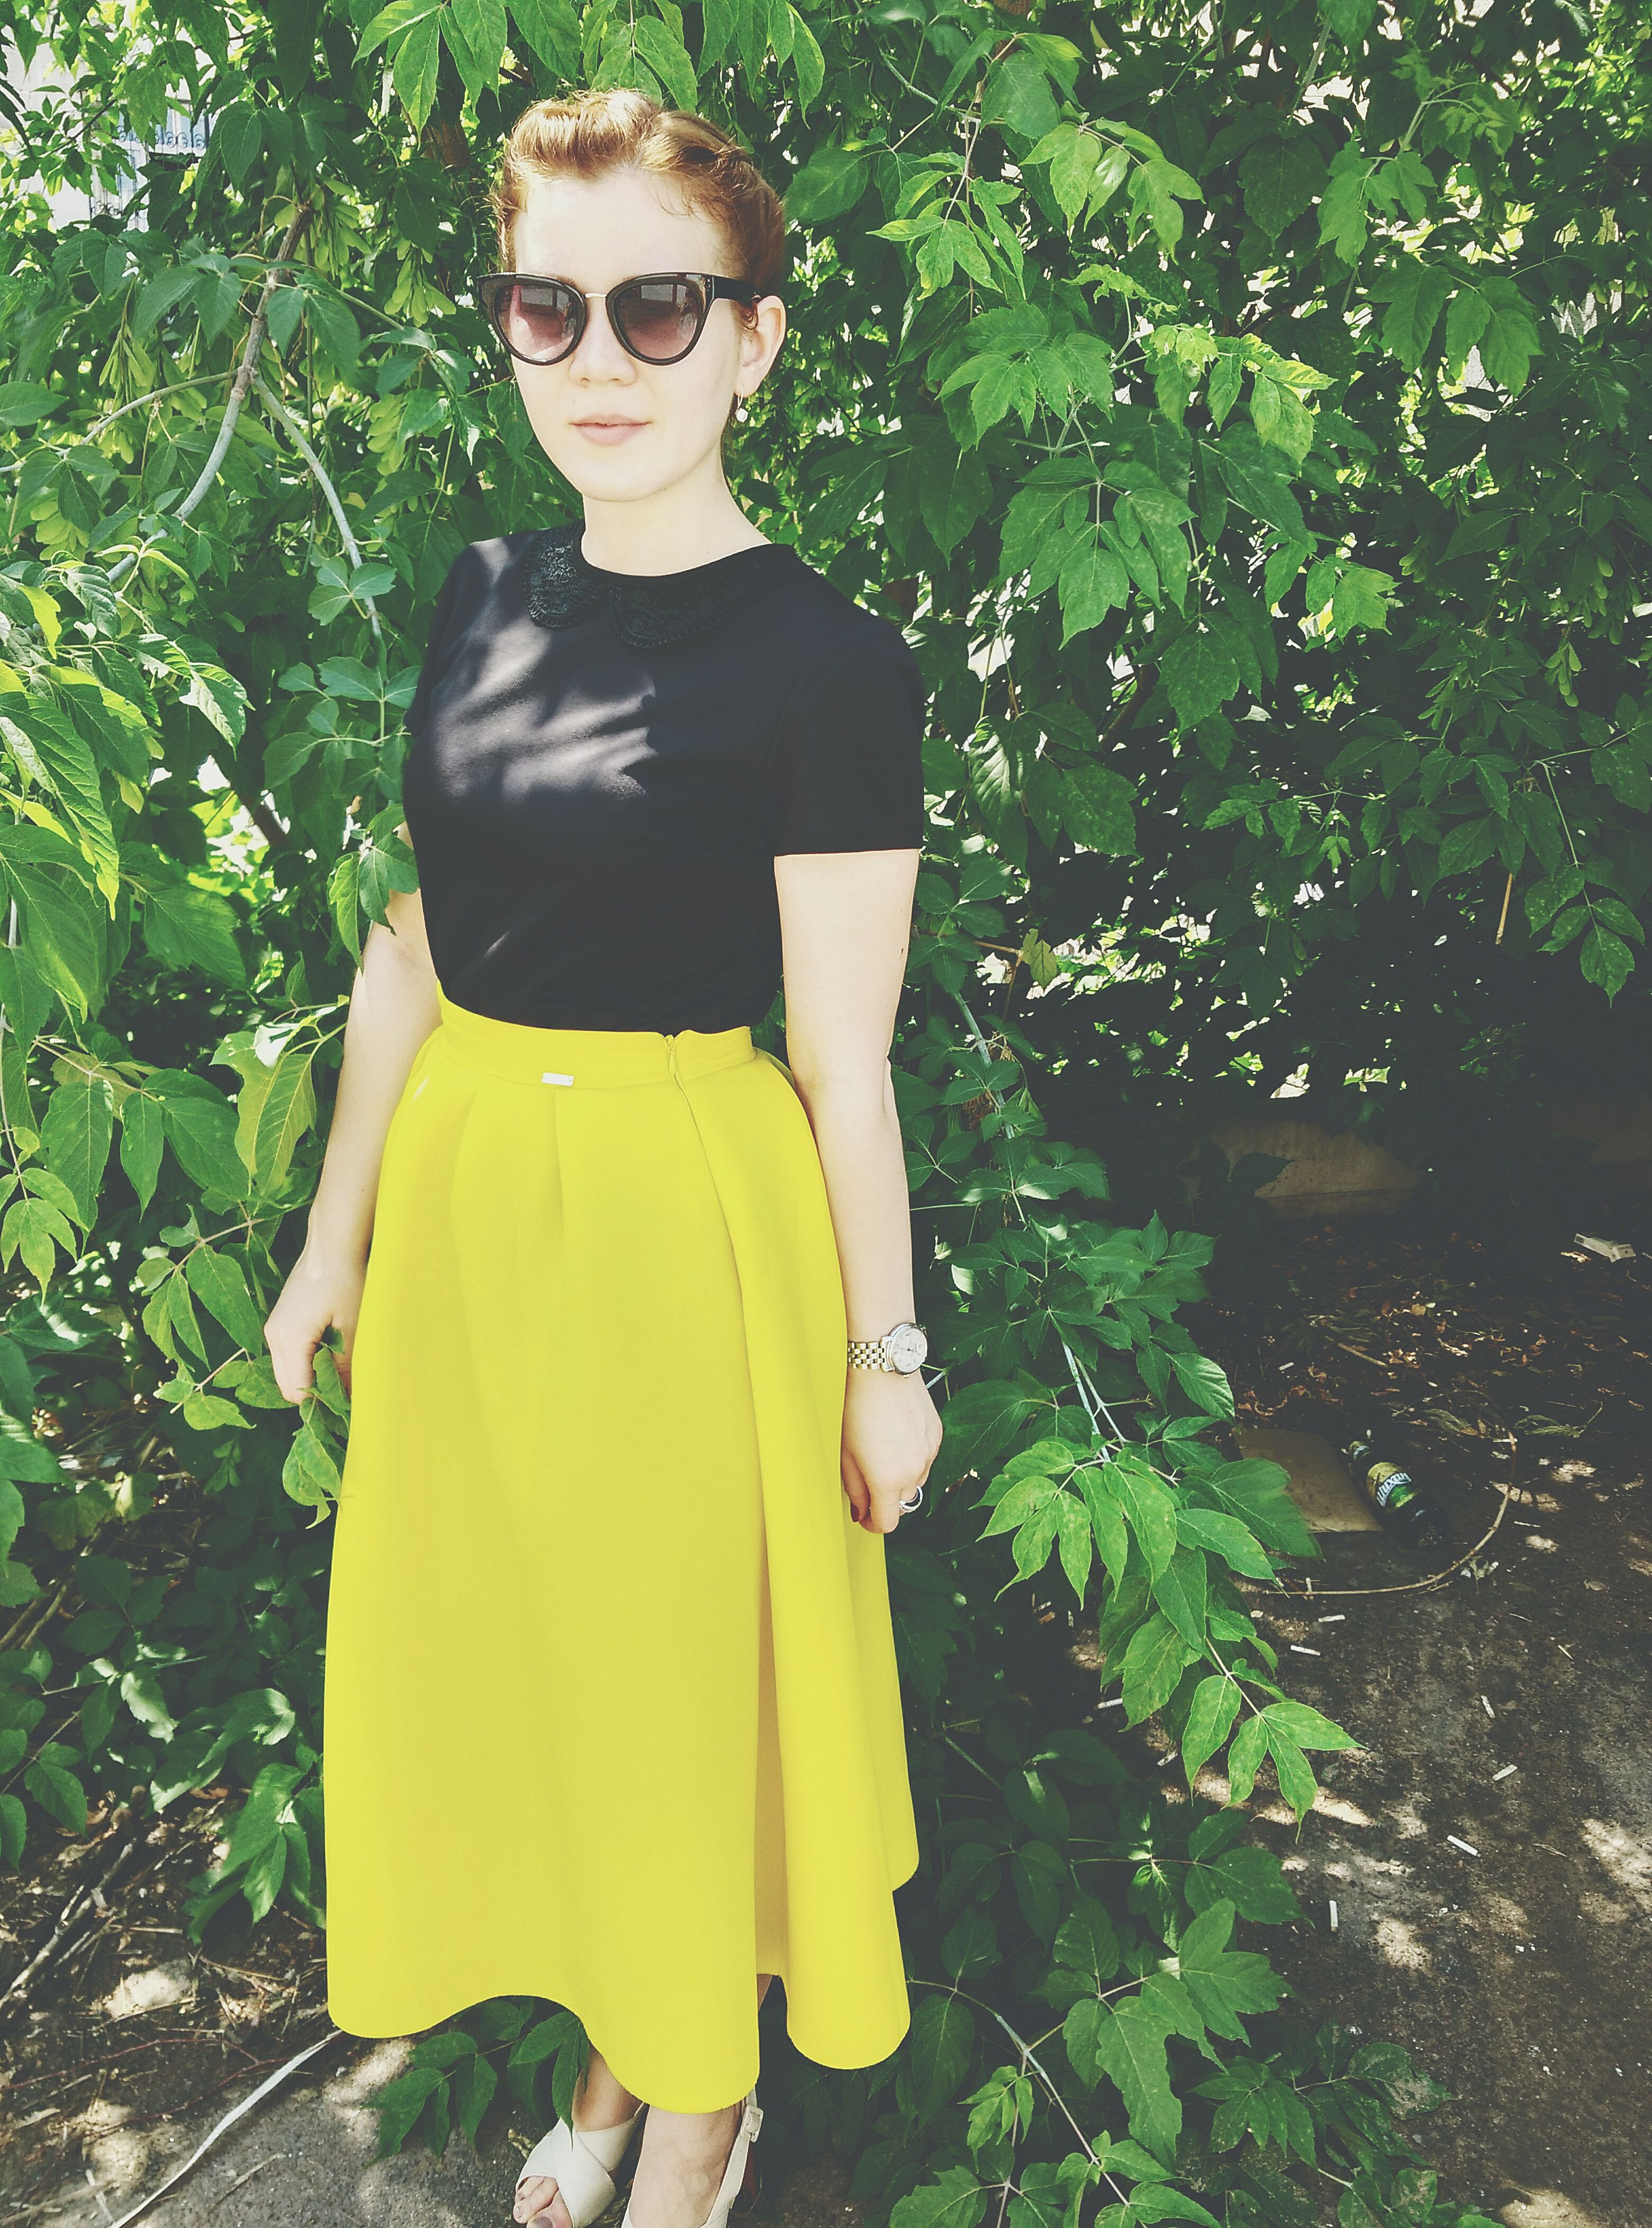 young adult, casual clothing, lifestyles, person, front view, young women, looking at camera, standing, leisure activity, portrait, three quarter length, tree, full length, smiling, sunglasses, holding, fashion